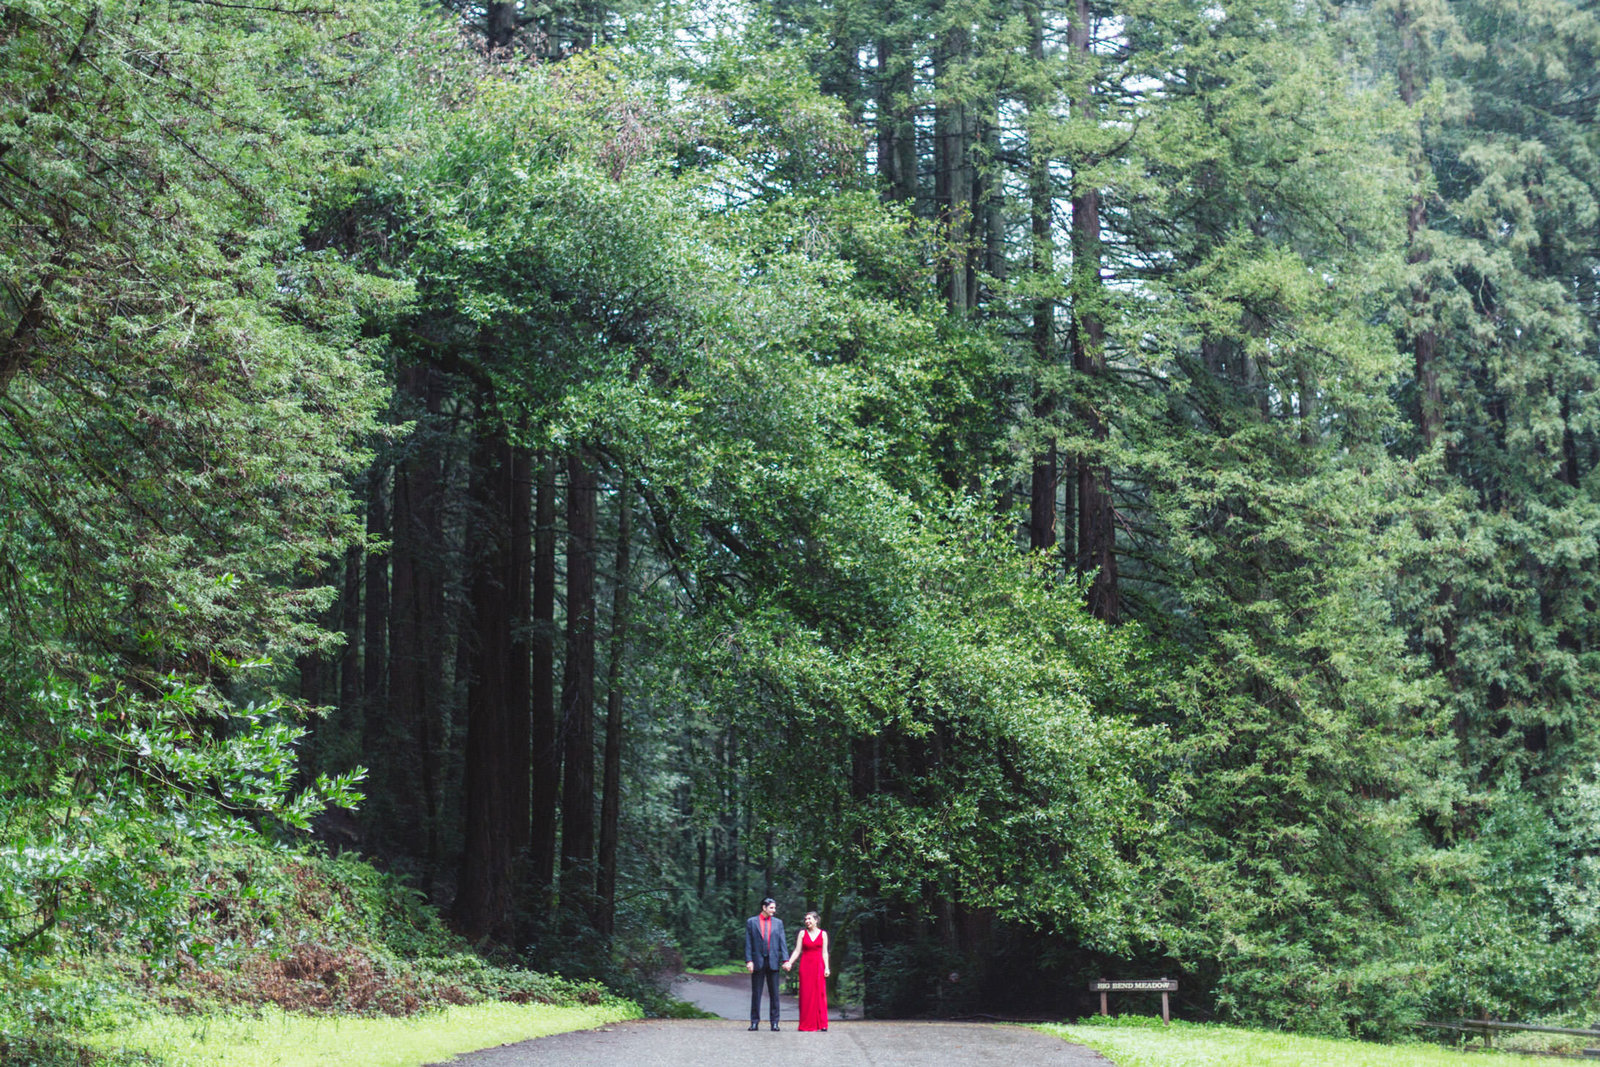 couple dwarfed by giant redwood trees at east bay redwood parks